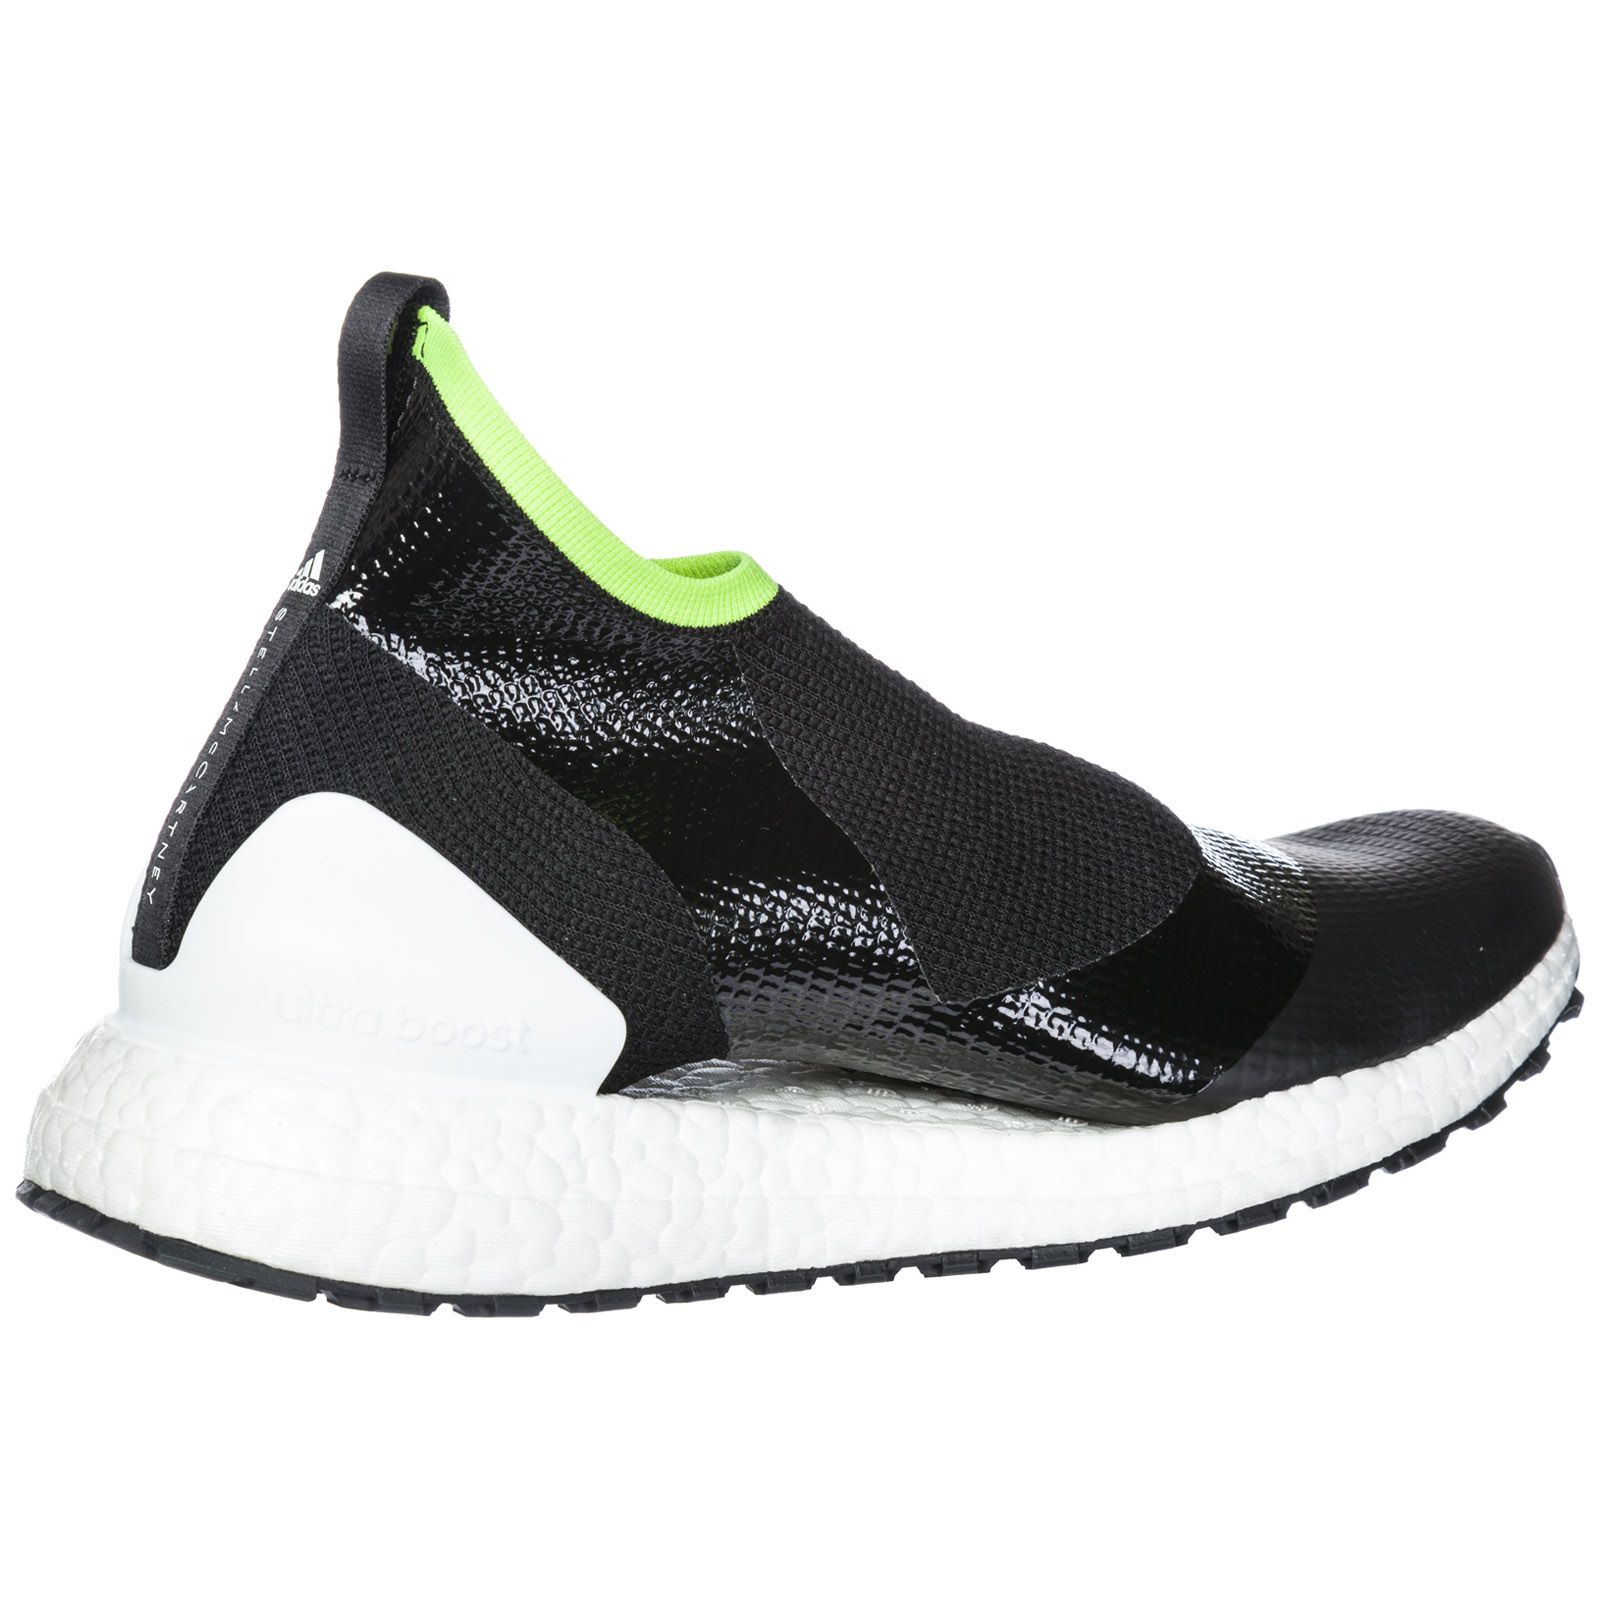 0f45e6c398a54 Slip on shoes Adidas by Stella McCartney Ultraboost X AC7567 nero ...